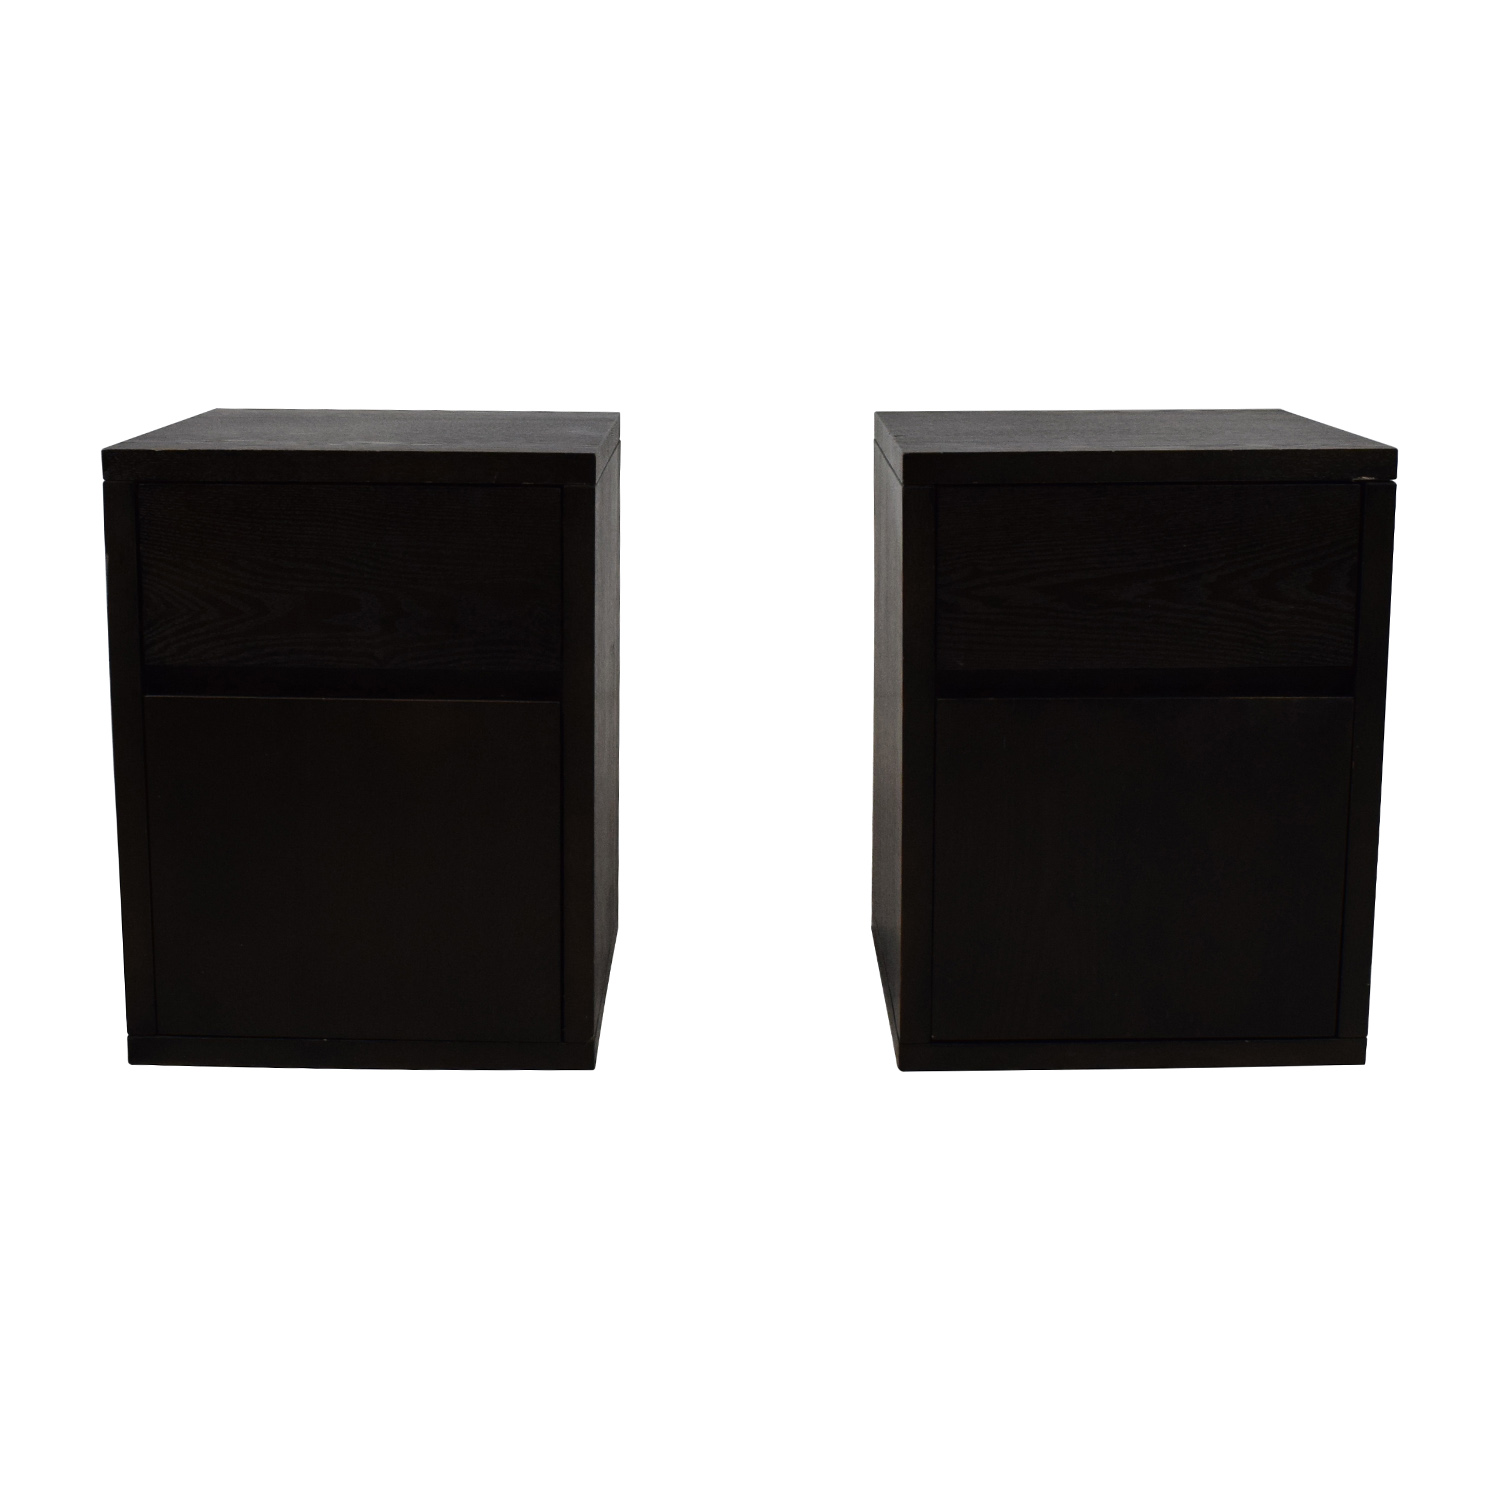 West Elm West Elm Solid Wood Nightstand Pair for sale